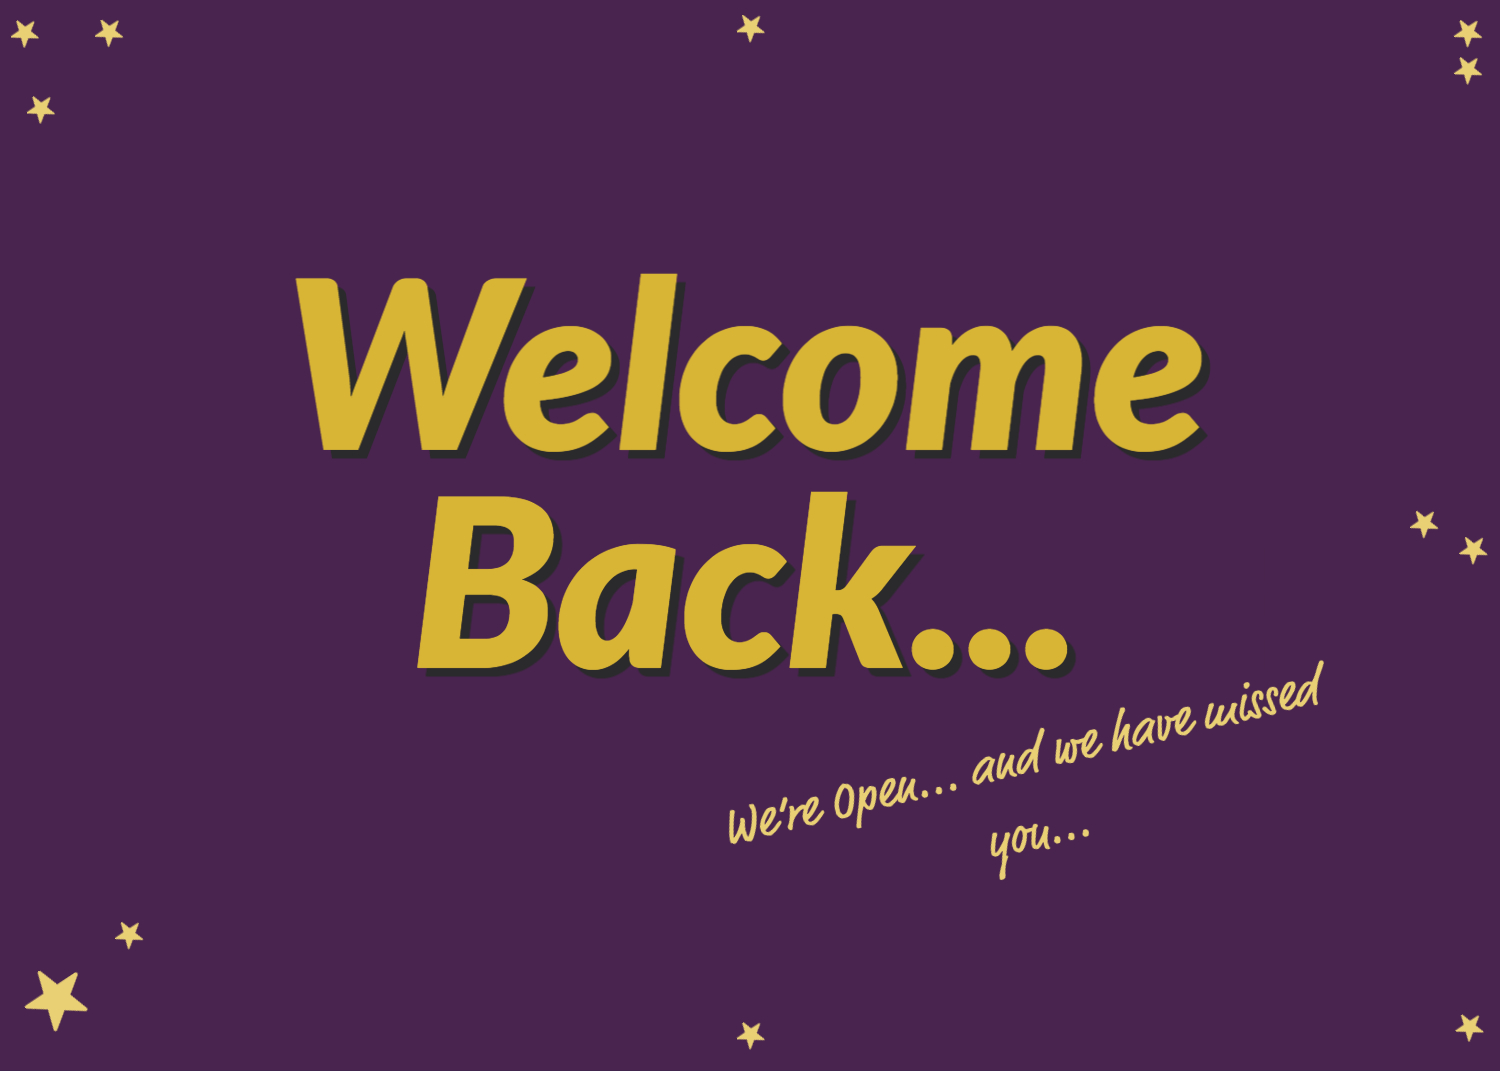 Welcome Back...